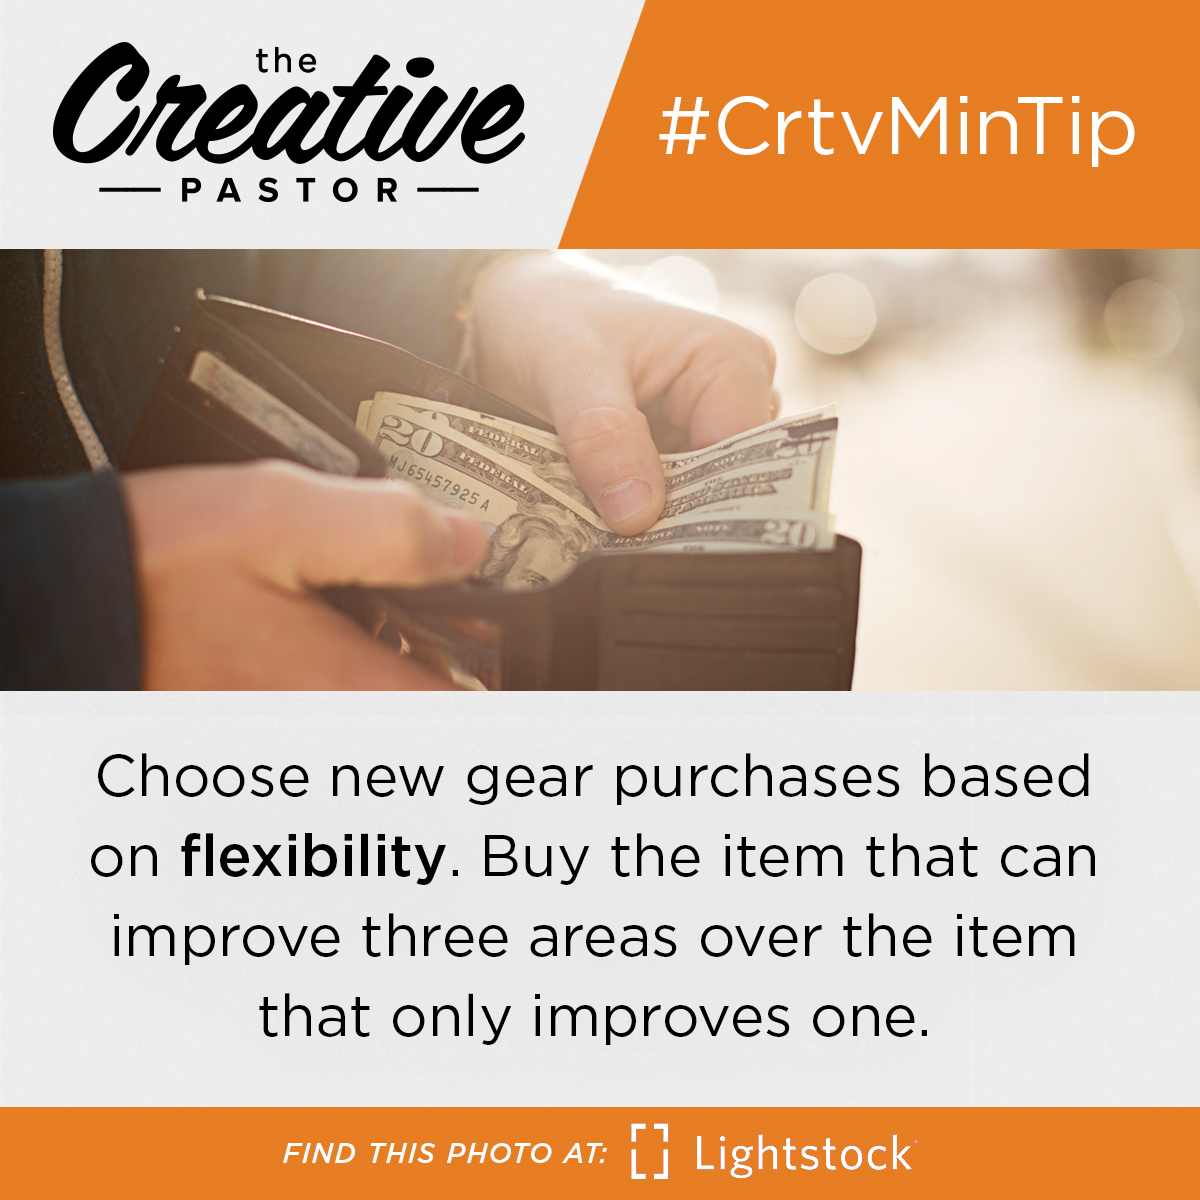 Choose new gear purchases based on flexibility. Buy the item that can improve three areas over the item that only improves one.